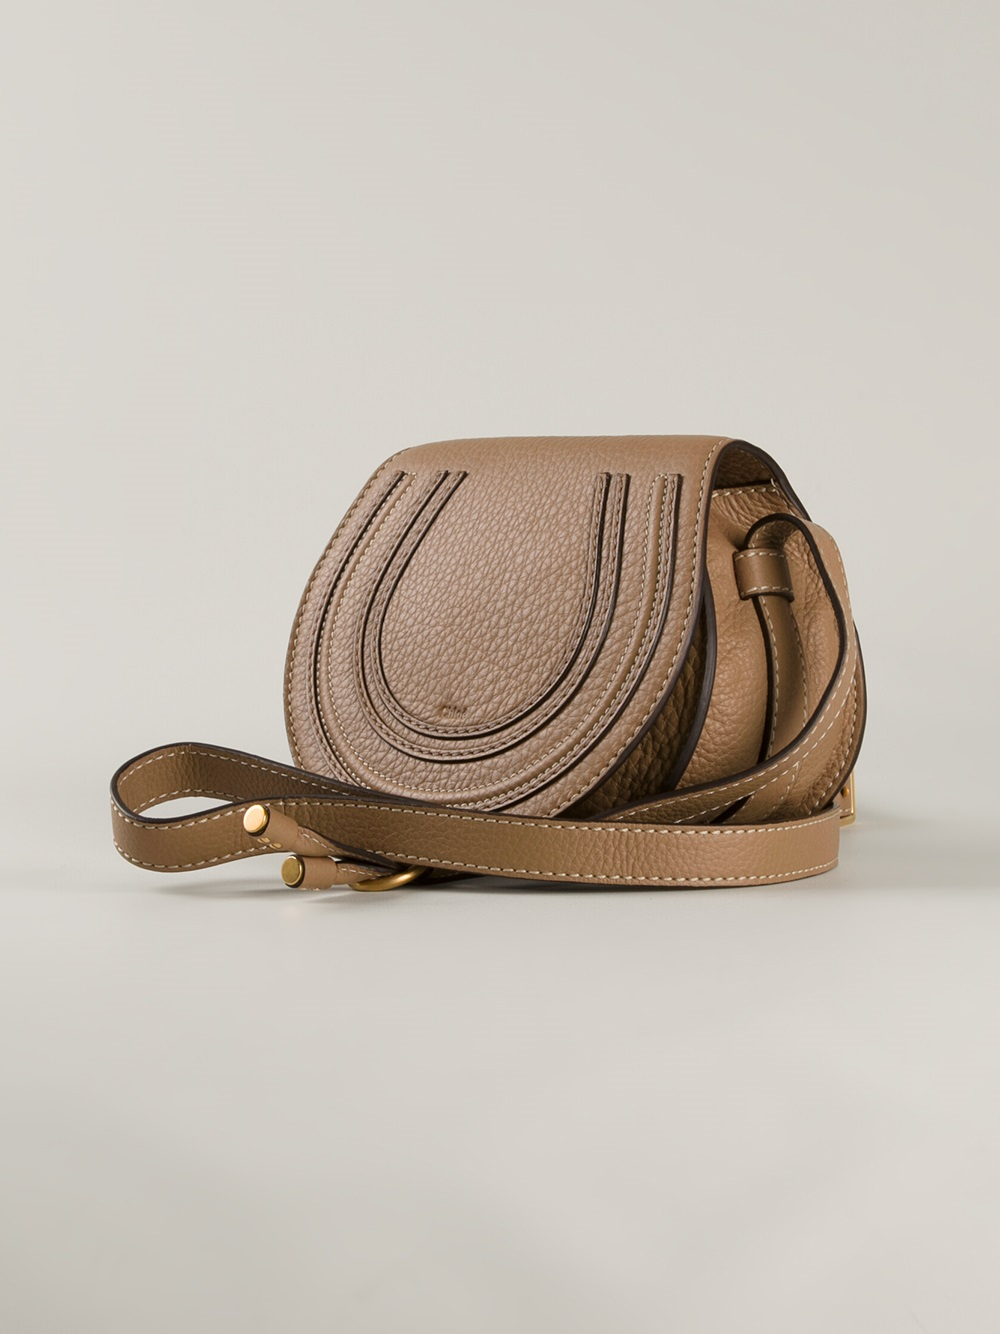 Chlo¨¦ Marcie Cross Body Bag in Beige (nude \u0026amp; neutrals) | Lyst